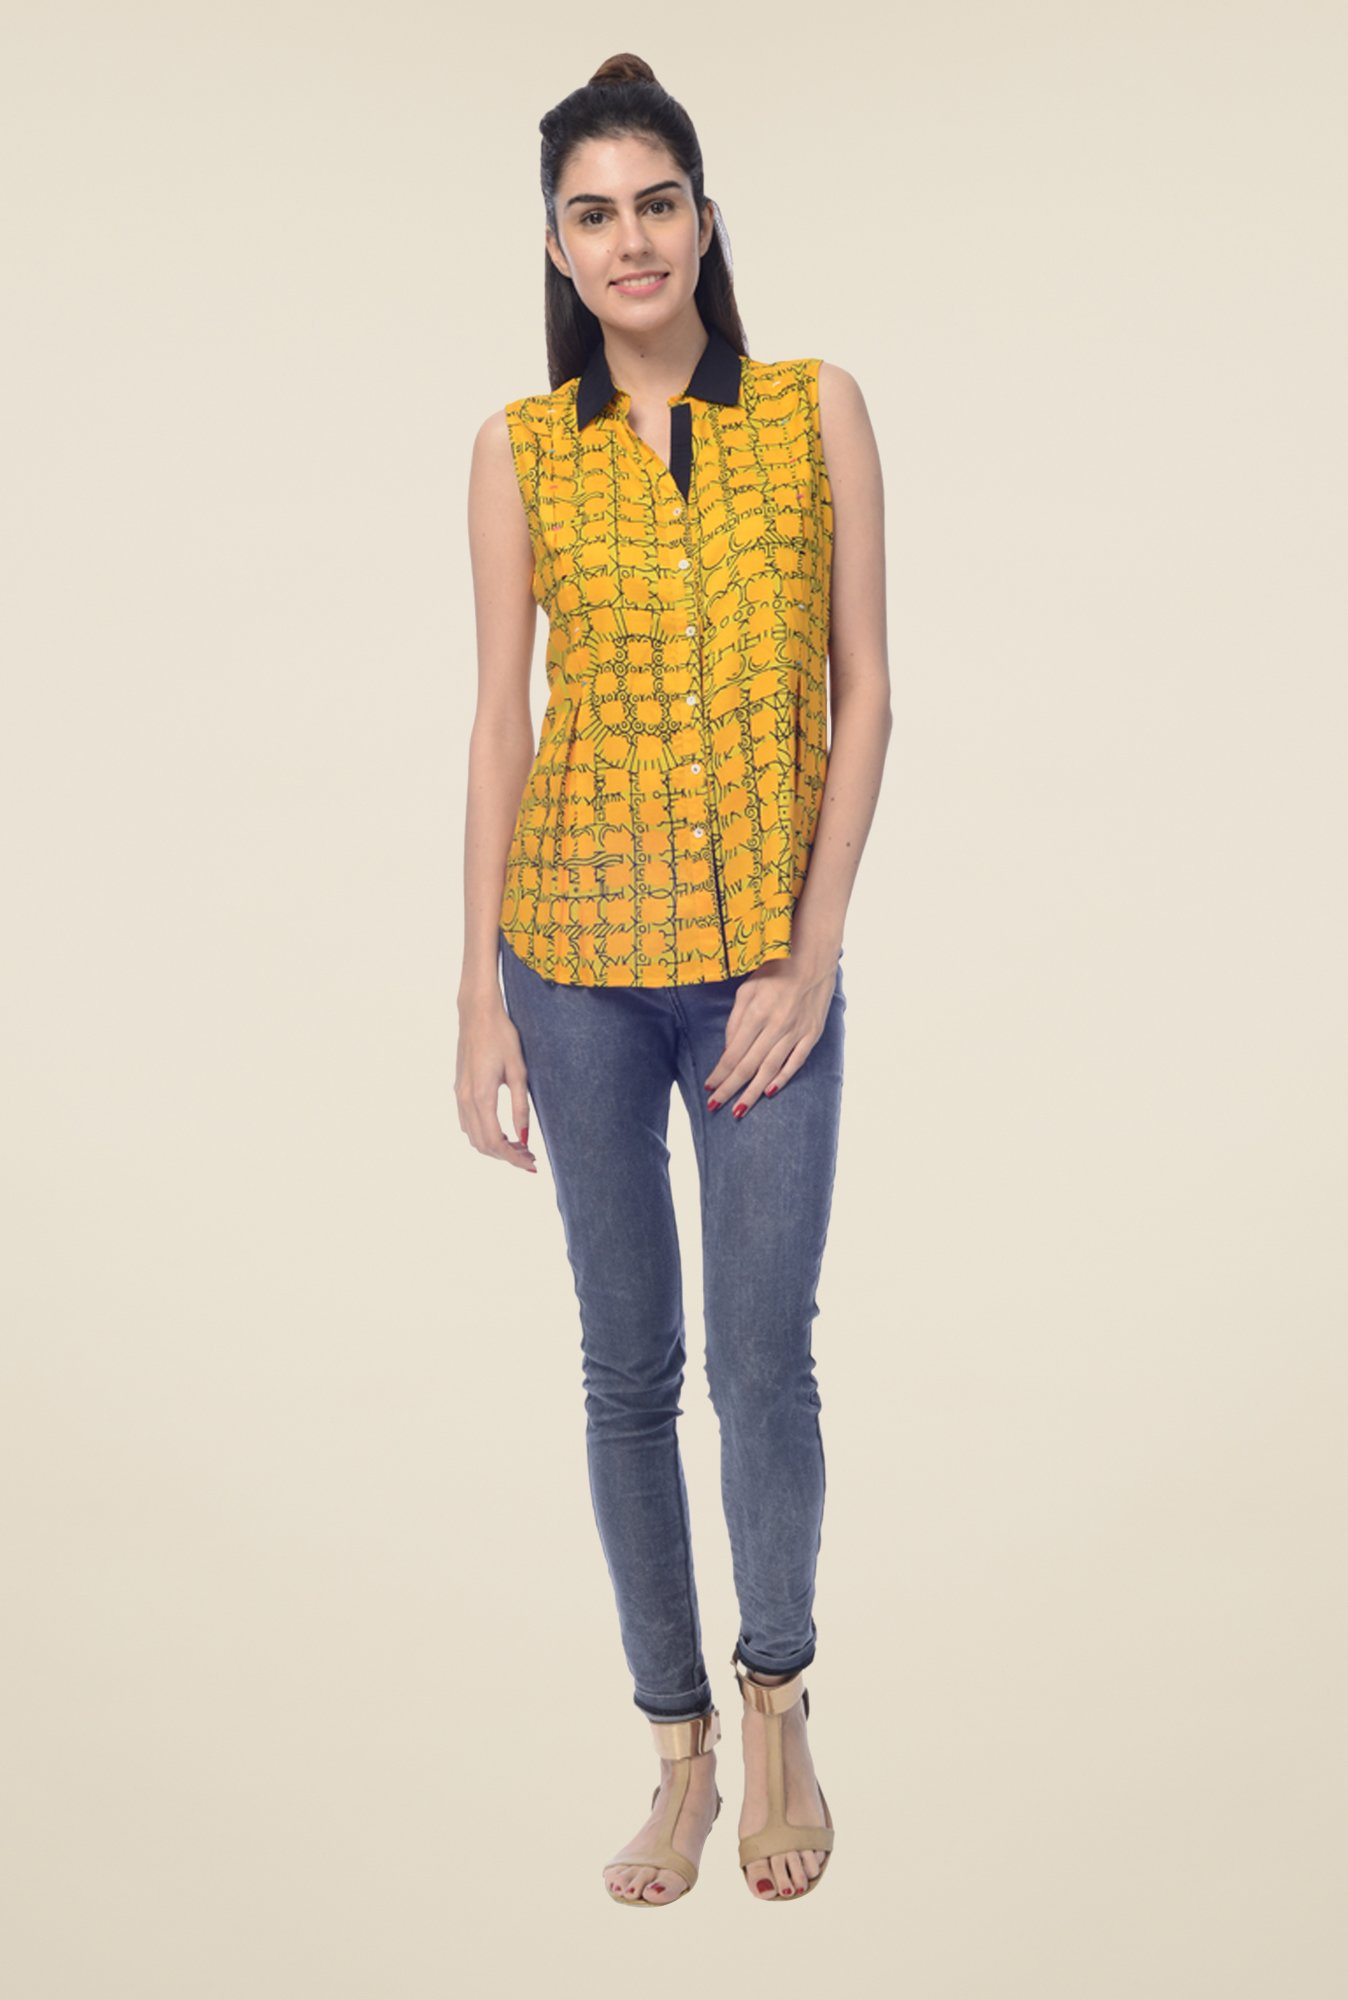 Desi Belle Yellow Printed Shirt